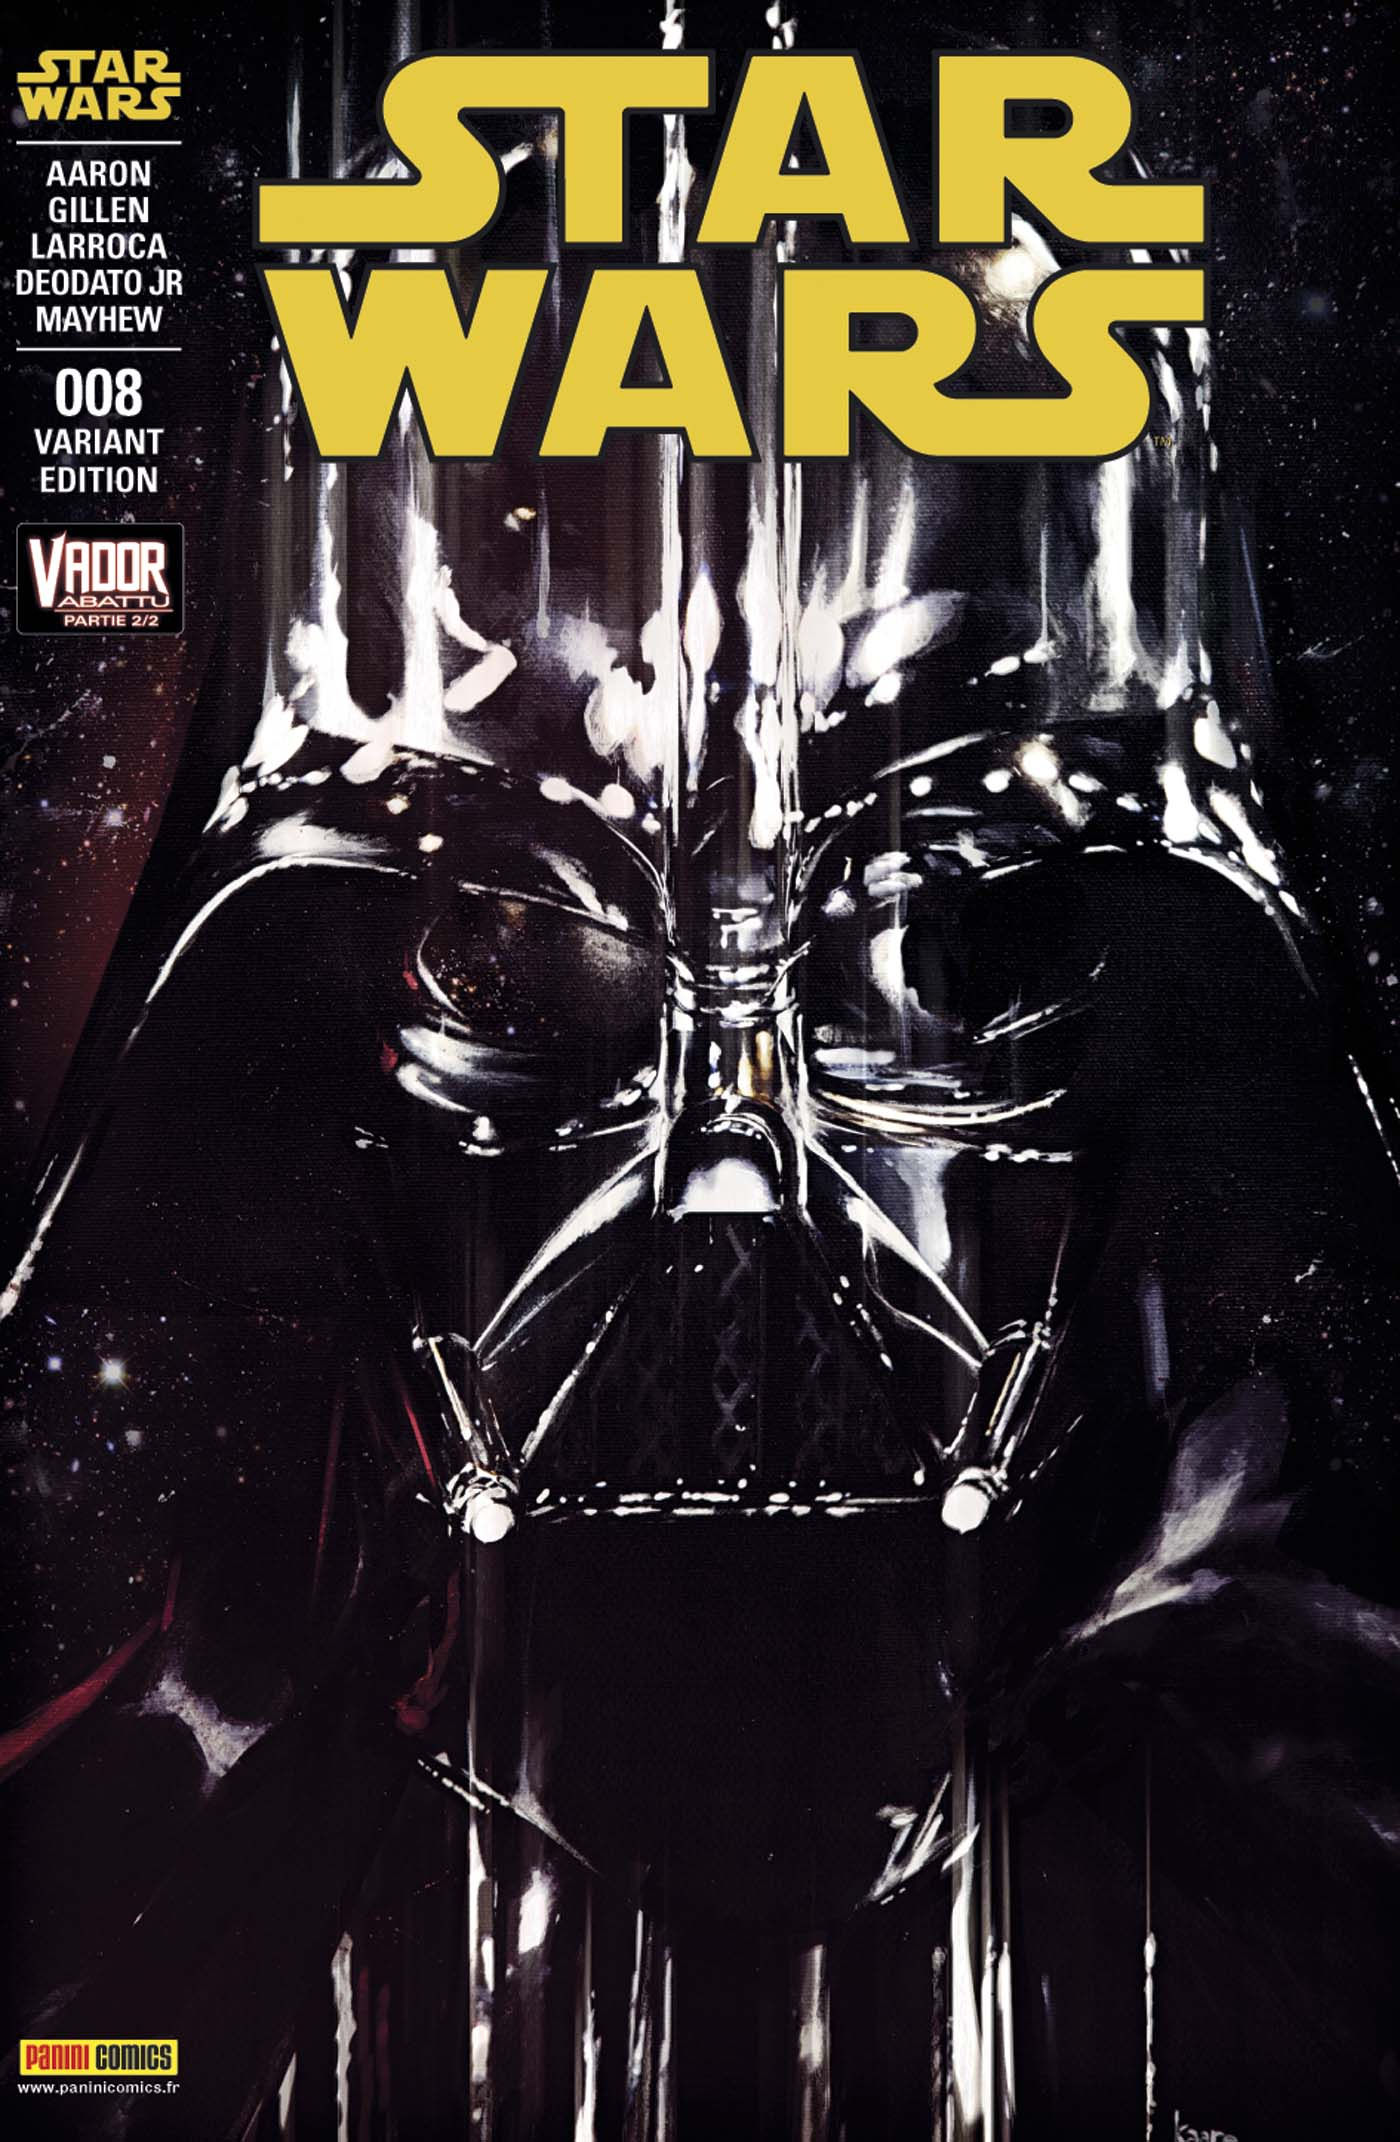 Star Wars Comics 8 - Couverture B